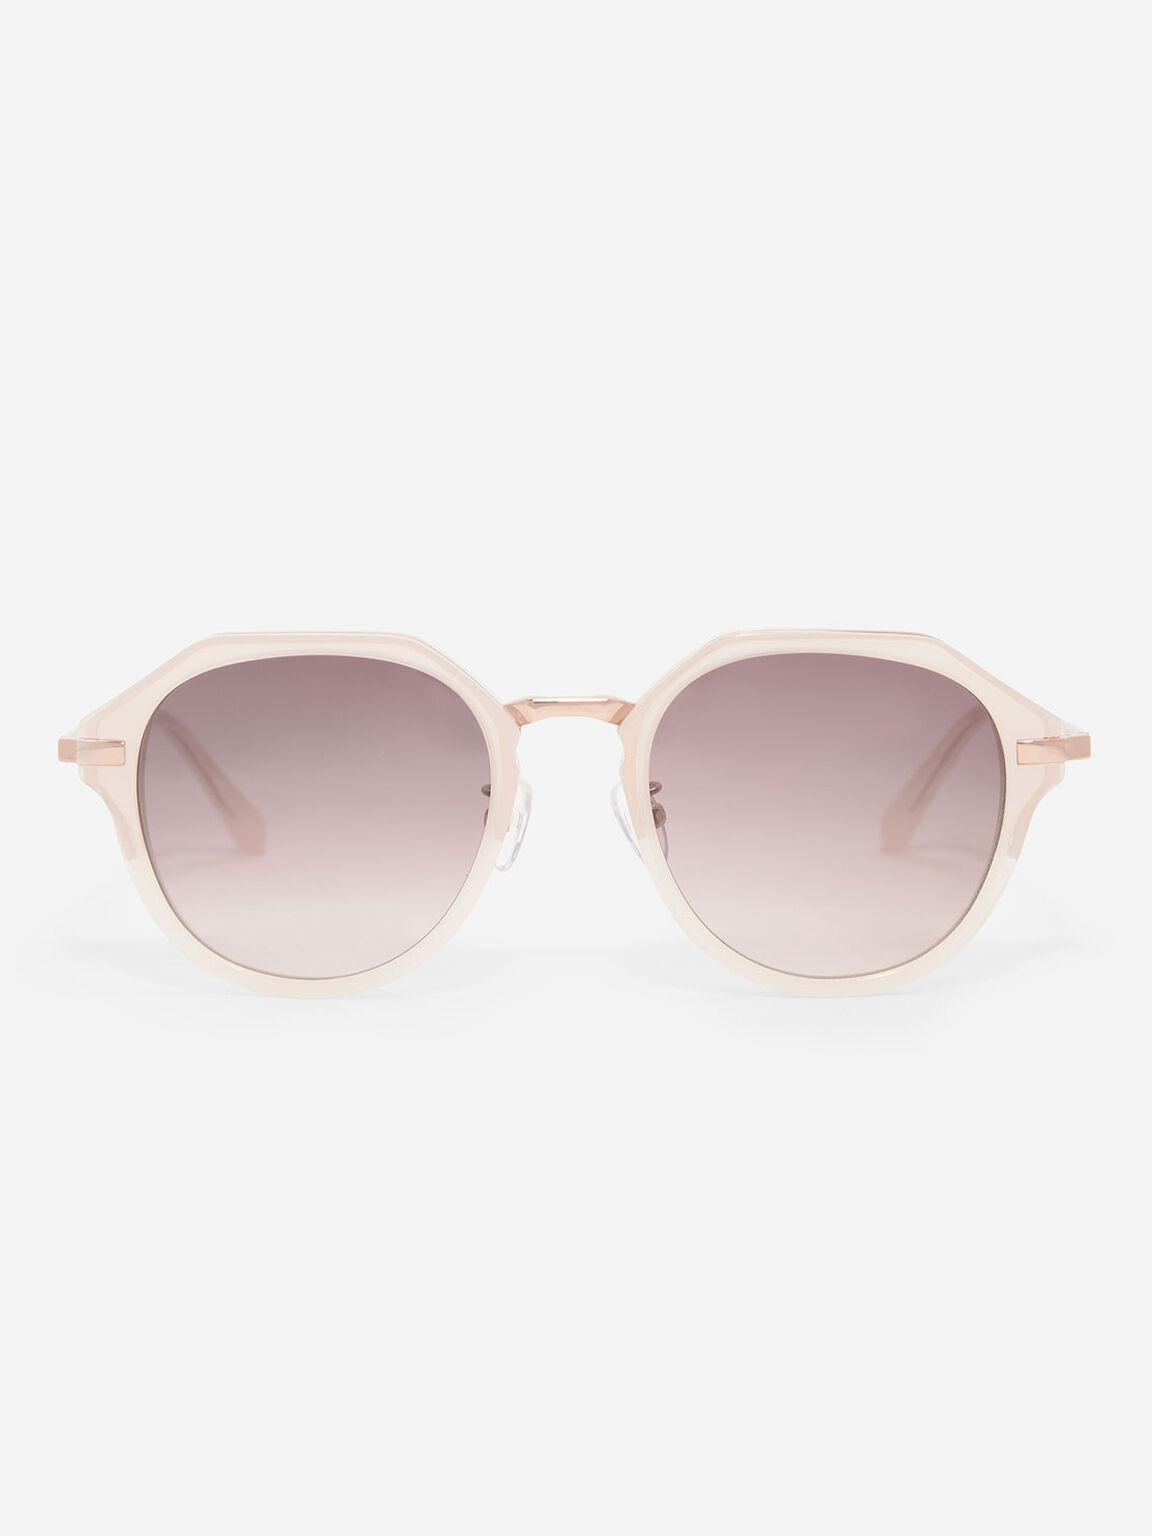 Angular Oval Sunglasses, Pink, hi-res